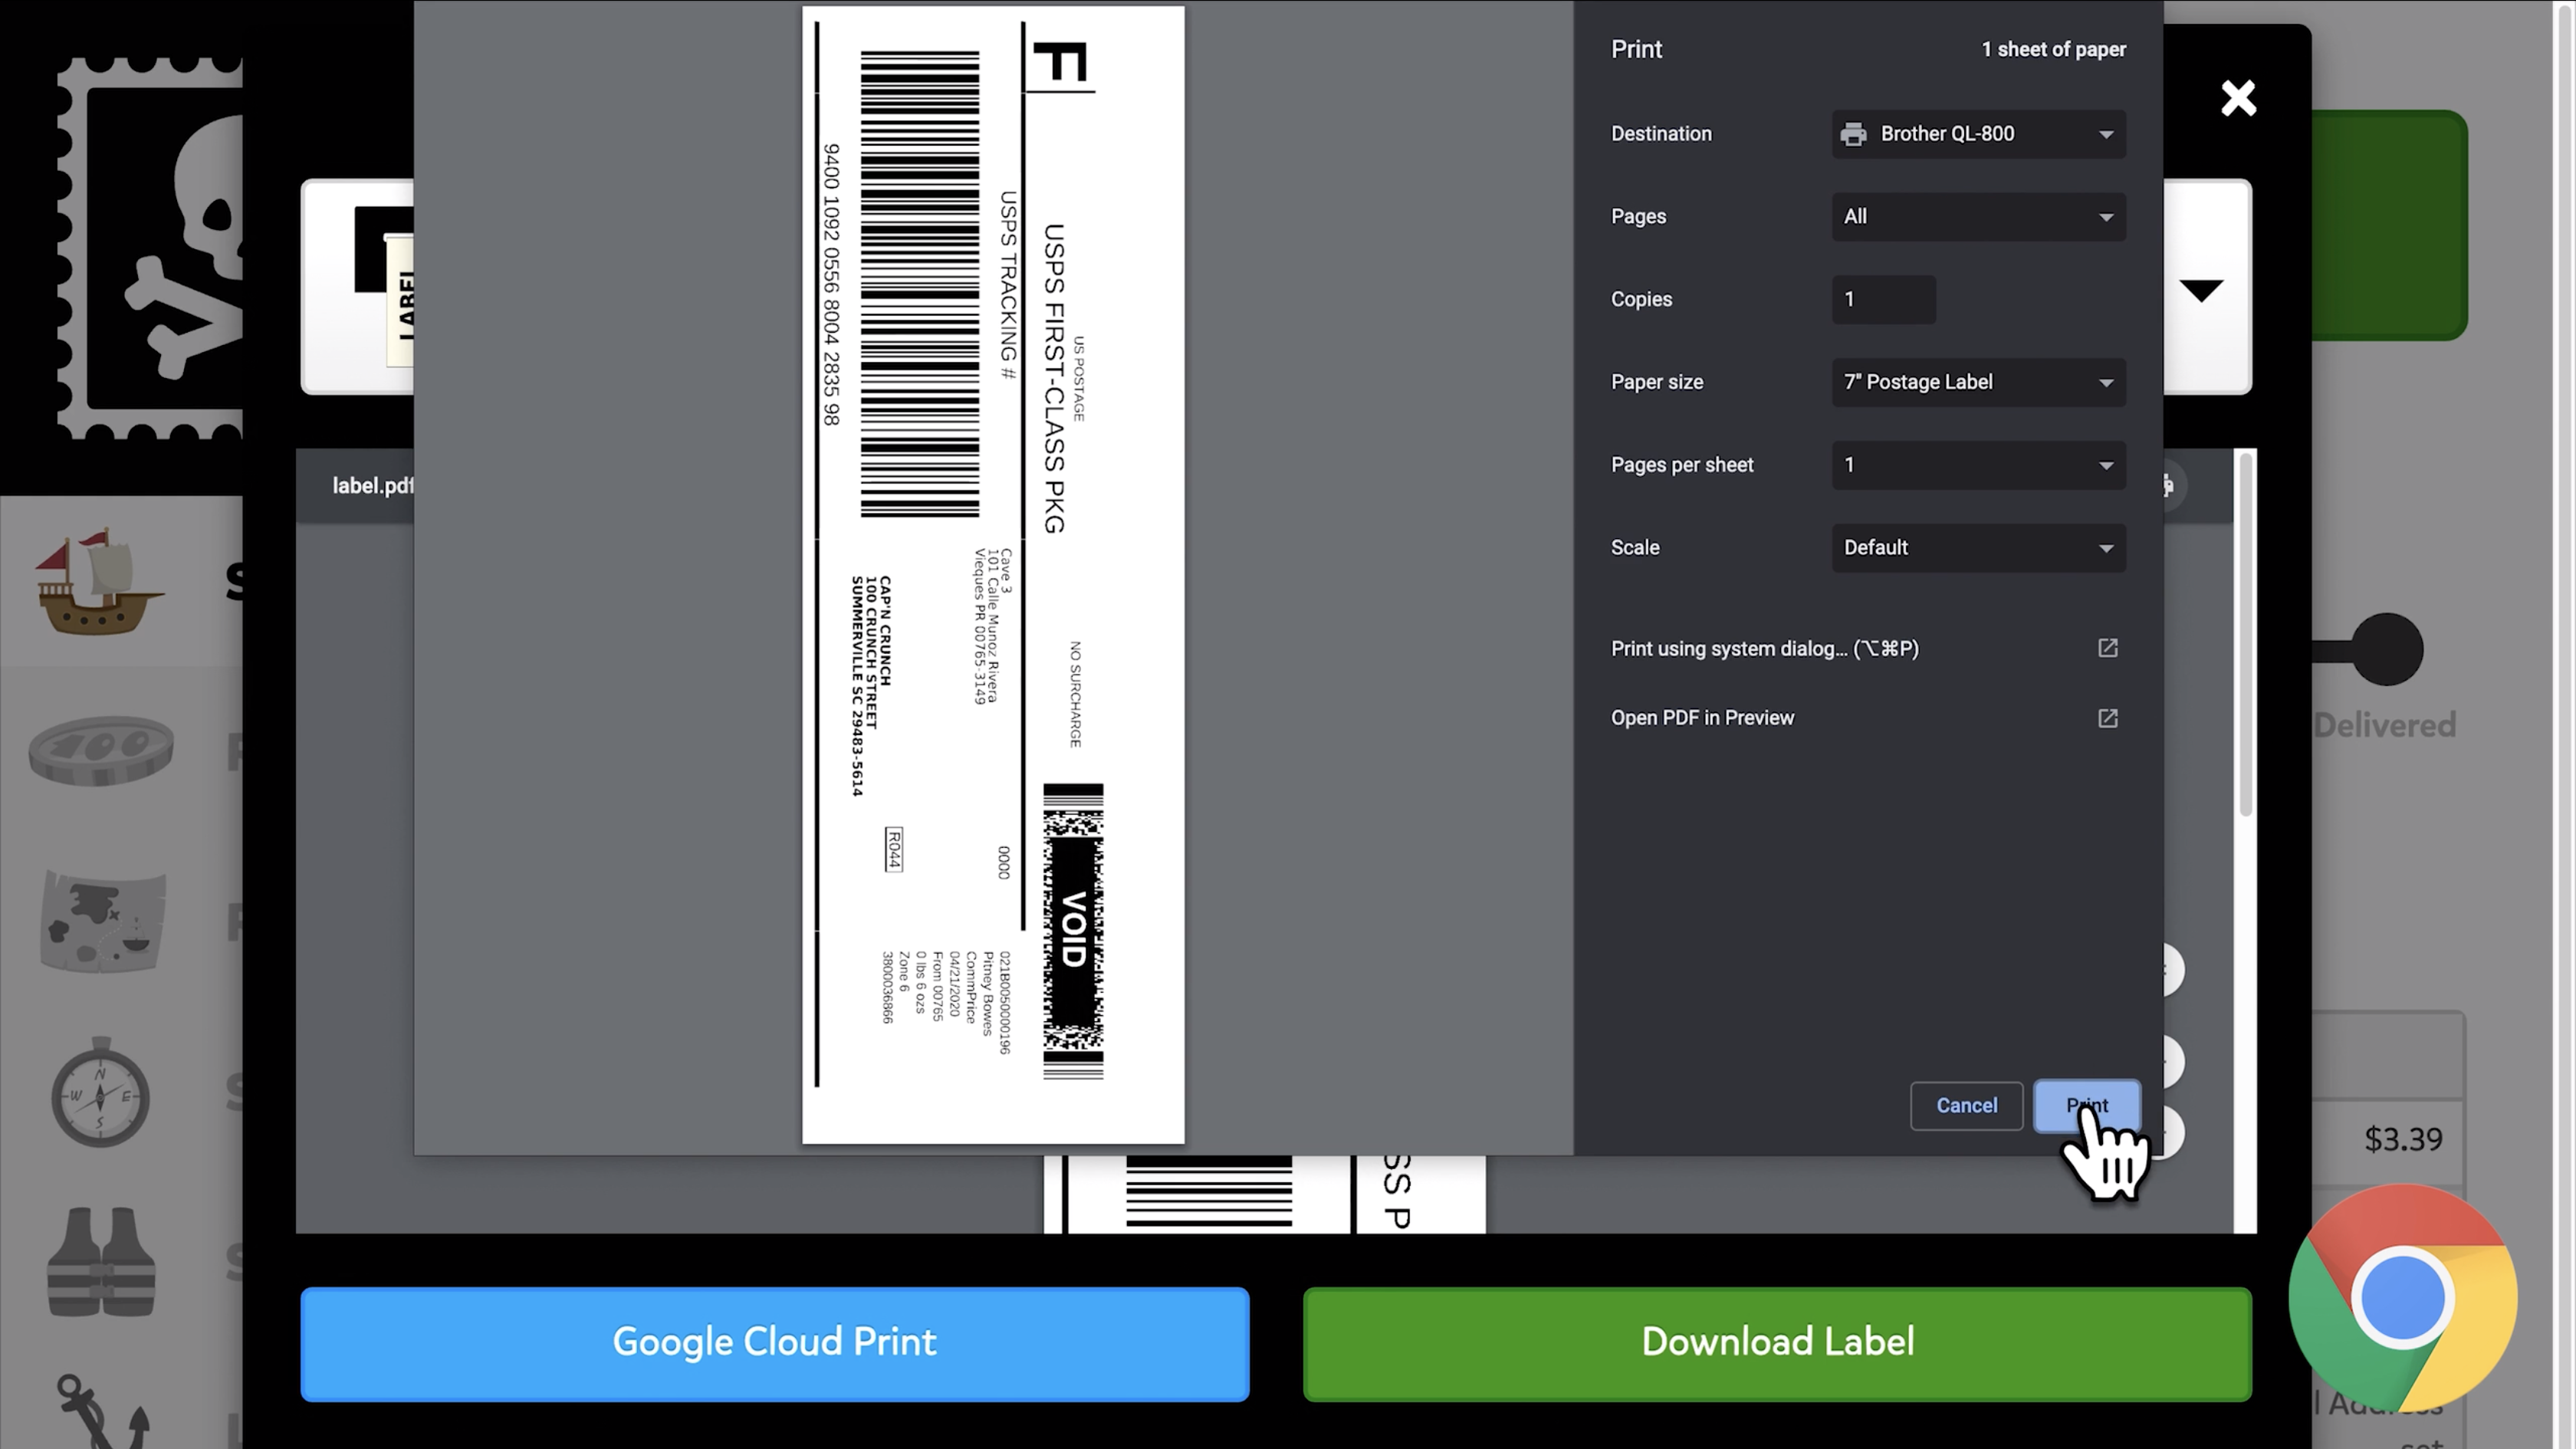 A screenshot of a 2 by 7 inch label being printed out of Chrome's print dialog window. The Brother QL 800 is selected as the destination, the paper size is set to '7 inch postage label,' and scale is set to default.